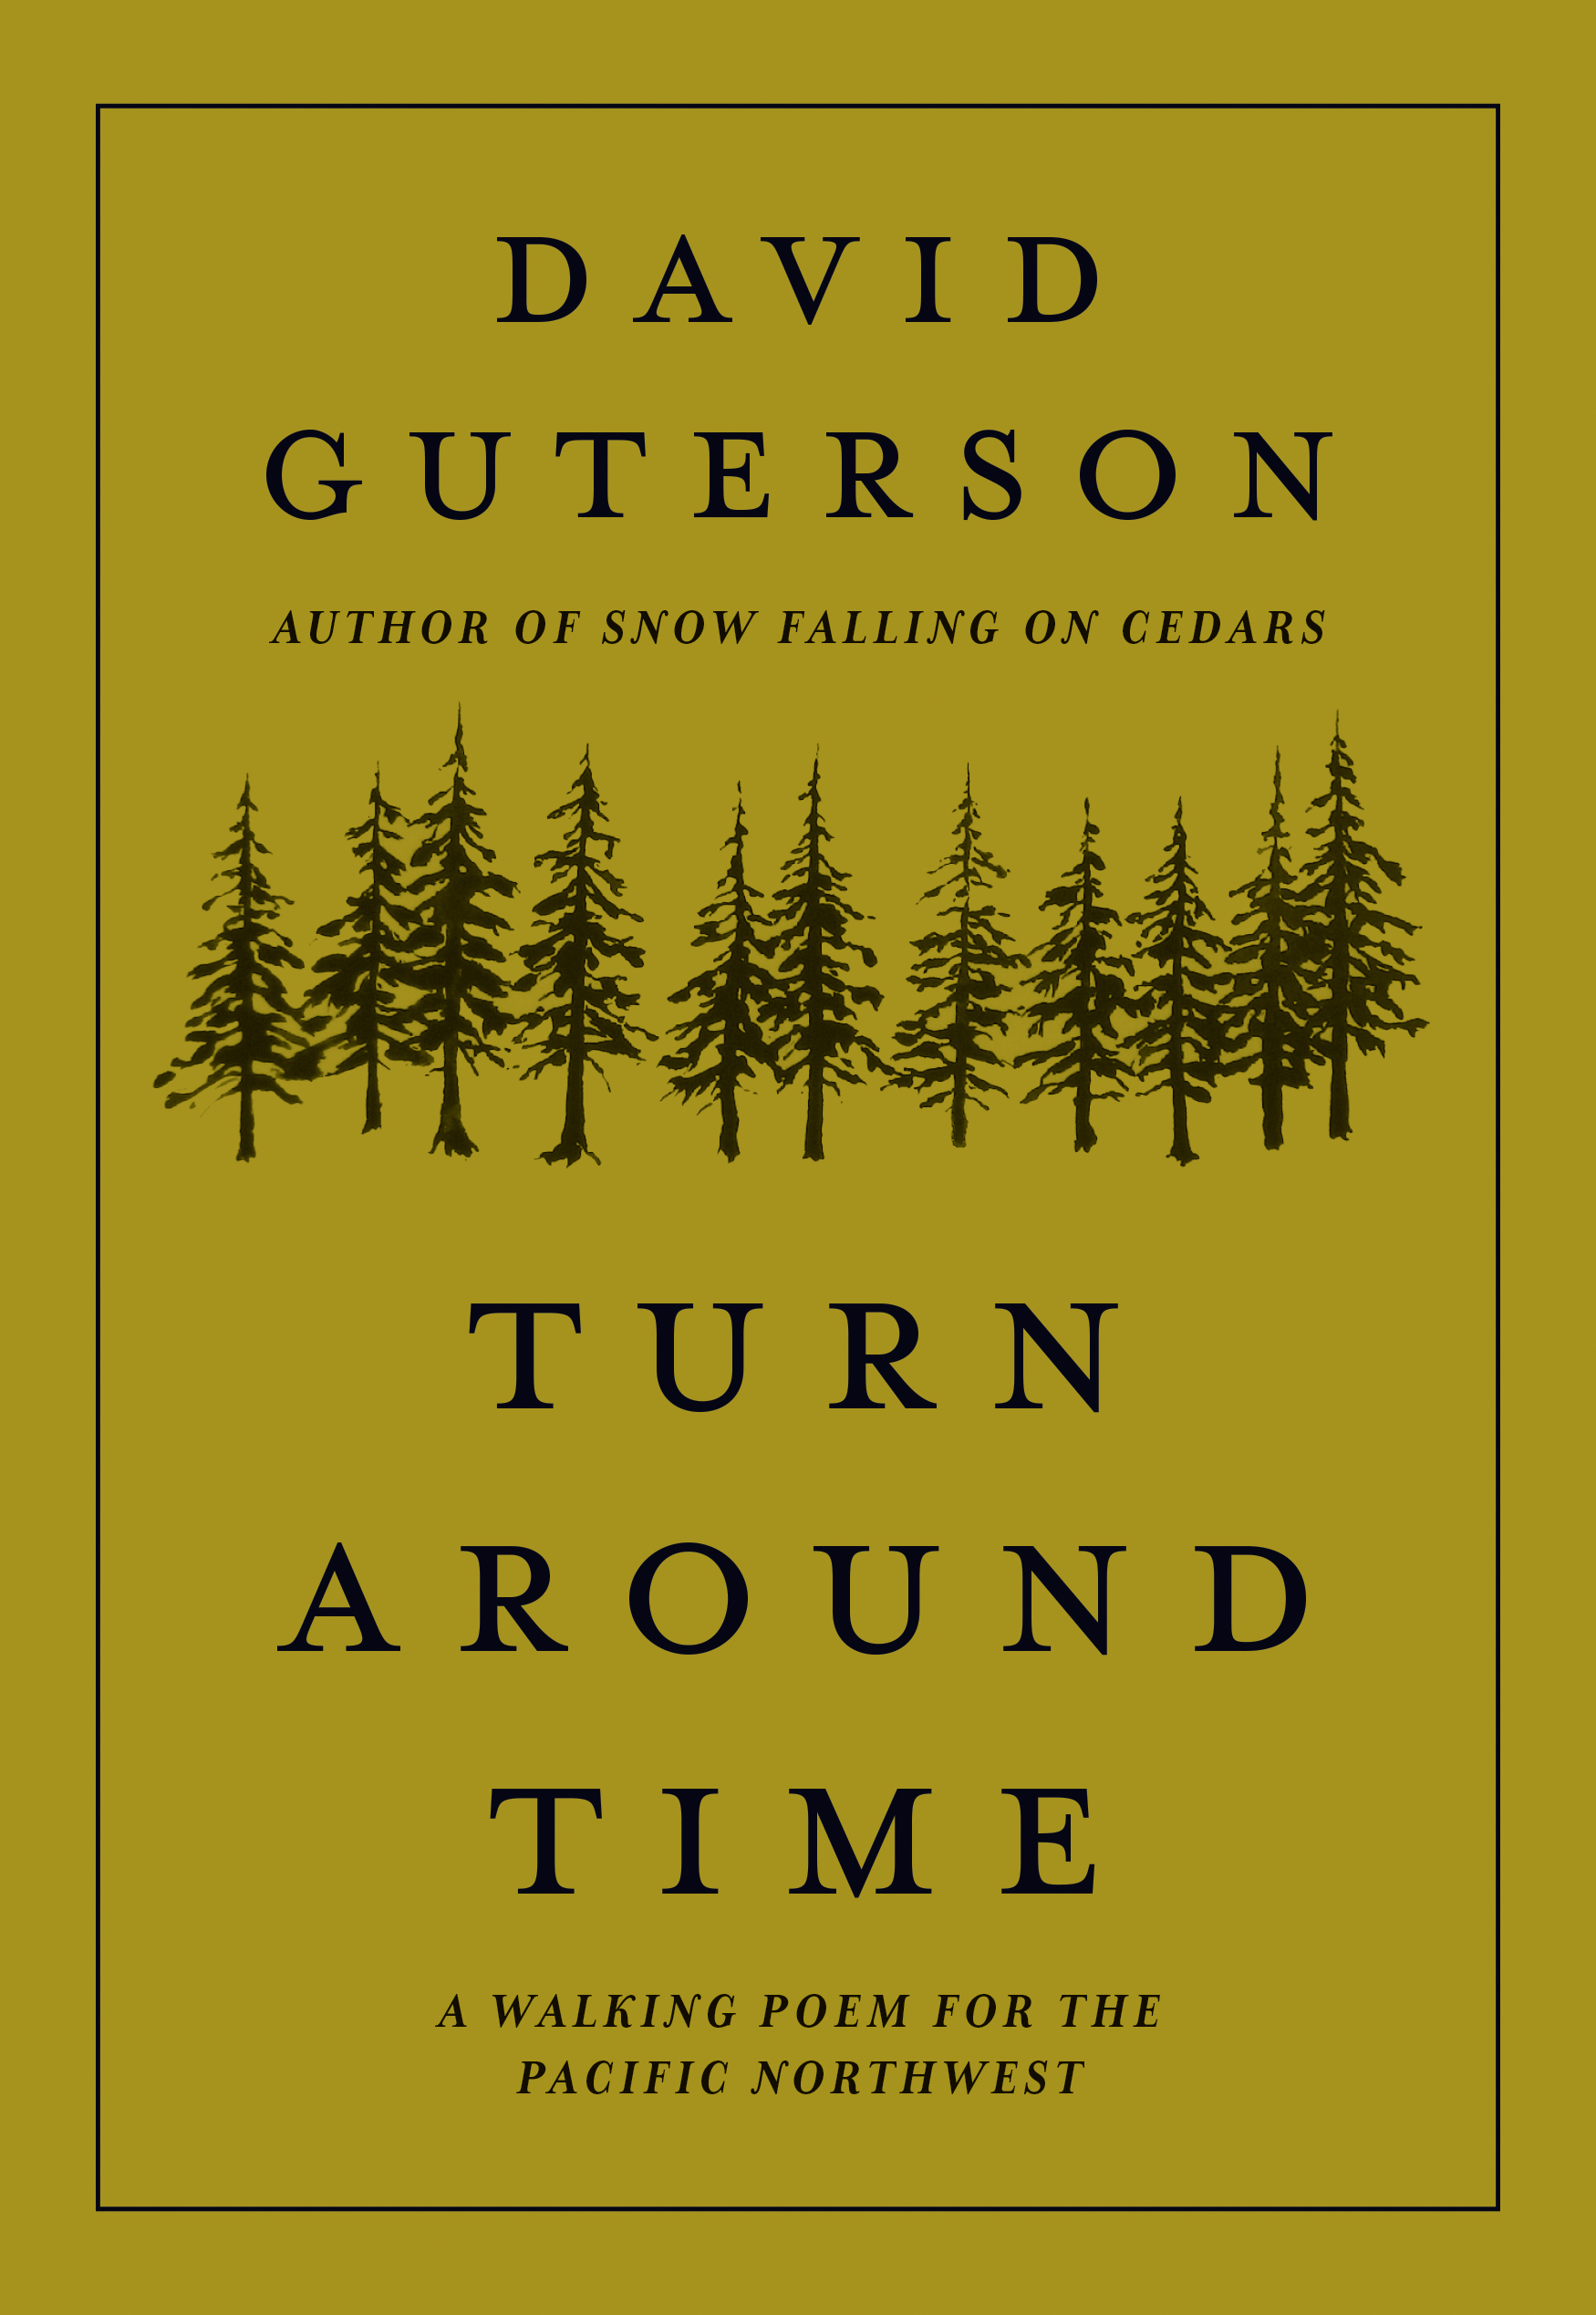 """Turn Around Time - Most outdoor enthusiasts understand the phrase """"turn around time"""" as that point in an adventure when you must cease heading out in order to have enough time to safely return to camp or home--regardless of whether you have reached your destination. For award-winning novelist David Guterson, it is also a metaphor for where we find ourselves in the middle of our lives, and his new narrative poem explores this idea through a lyrical journey along a trail, much like those in Washington's mountain ranges he hiked while growing up.Even outdoor-lovers who are not normally readers of poetry will relate to the physicality of hiking represented here, from endless trail switchbacks to foot and ankle pains. There is a fast-moving, propulsive quality to David's writing, with lush language, vivid imagery, and pacing that resonates as a journey on foot. His words are brought further to life by the delicate yet mythical illustrations by award-winning artist Justin Gibbens."""